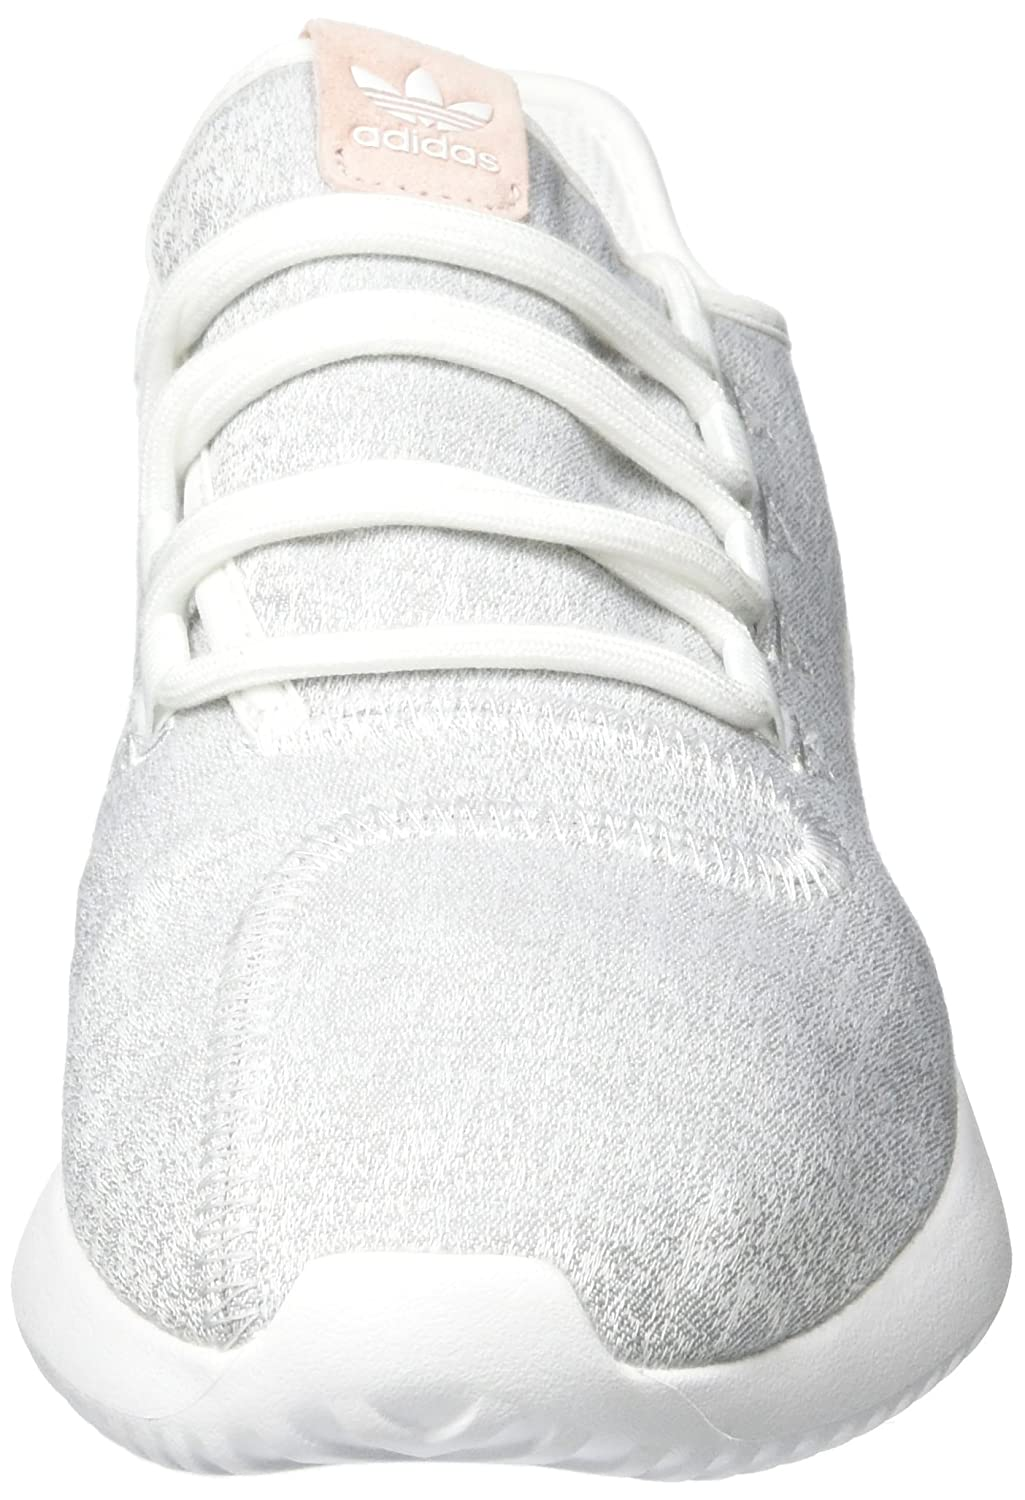 1830c33c6d5e7 adidas Tubular Shadow